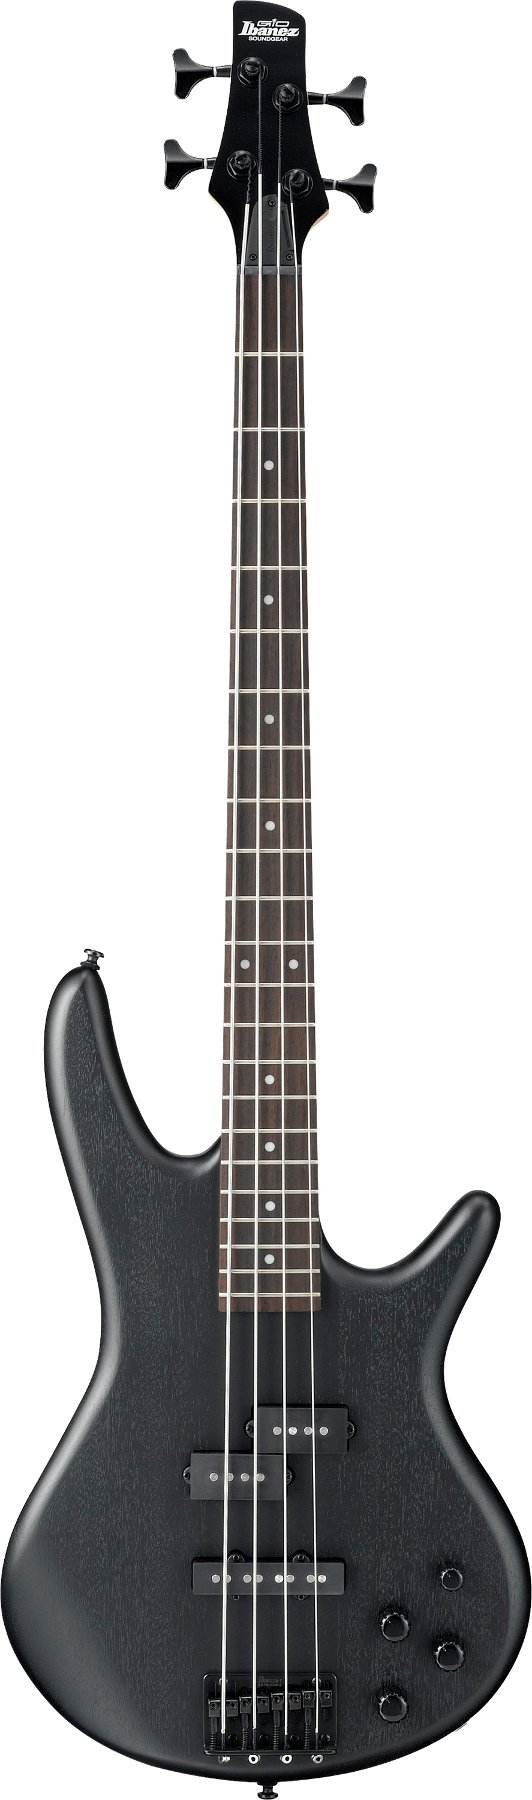 Weathered Black Gio Series Electric Bass